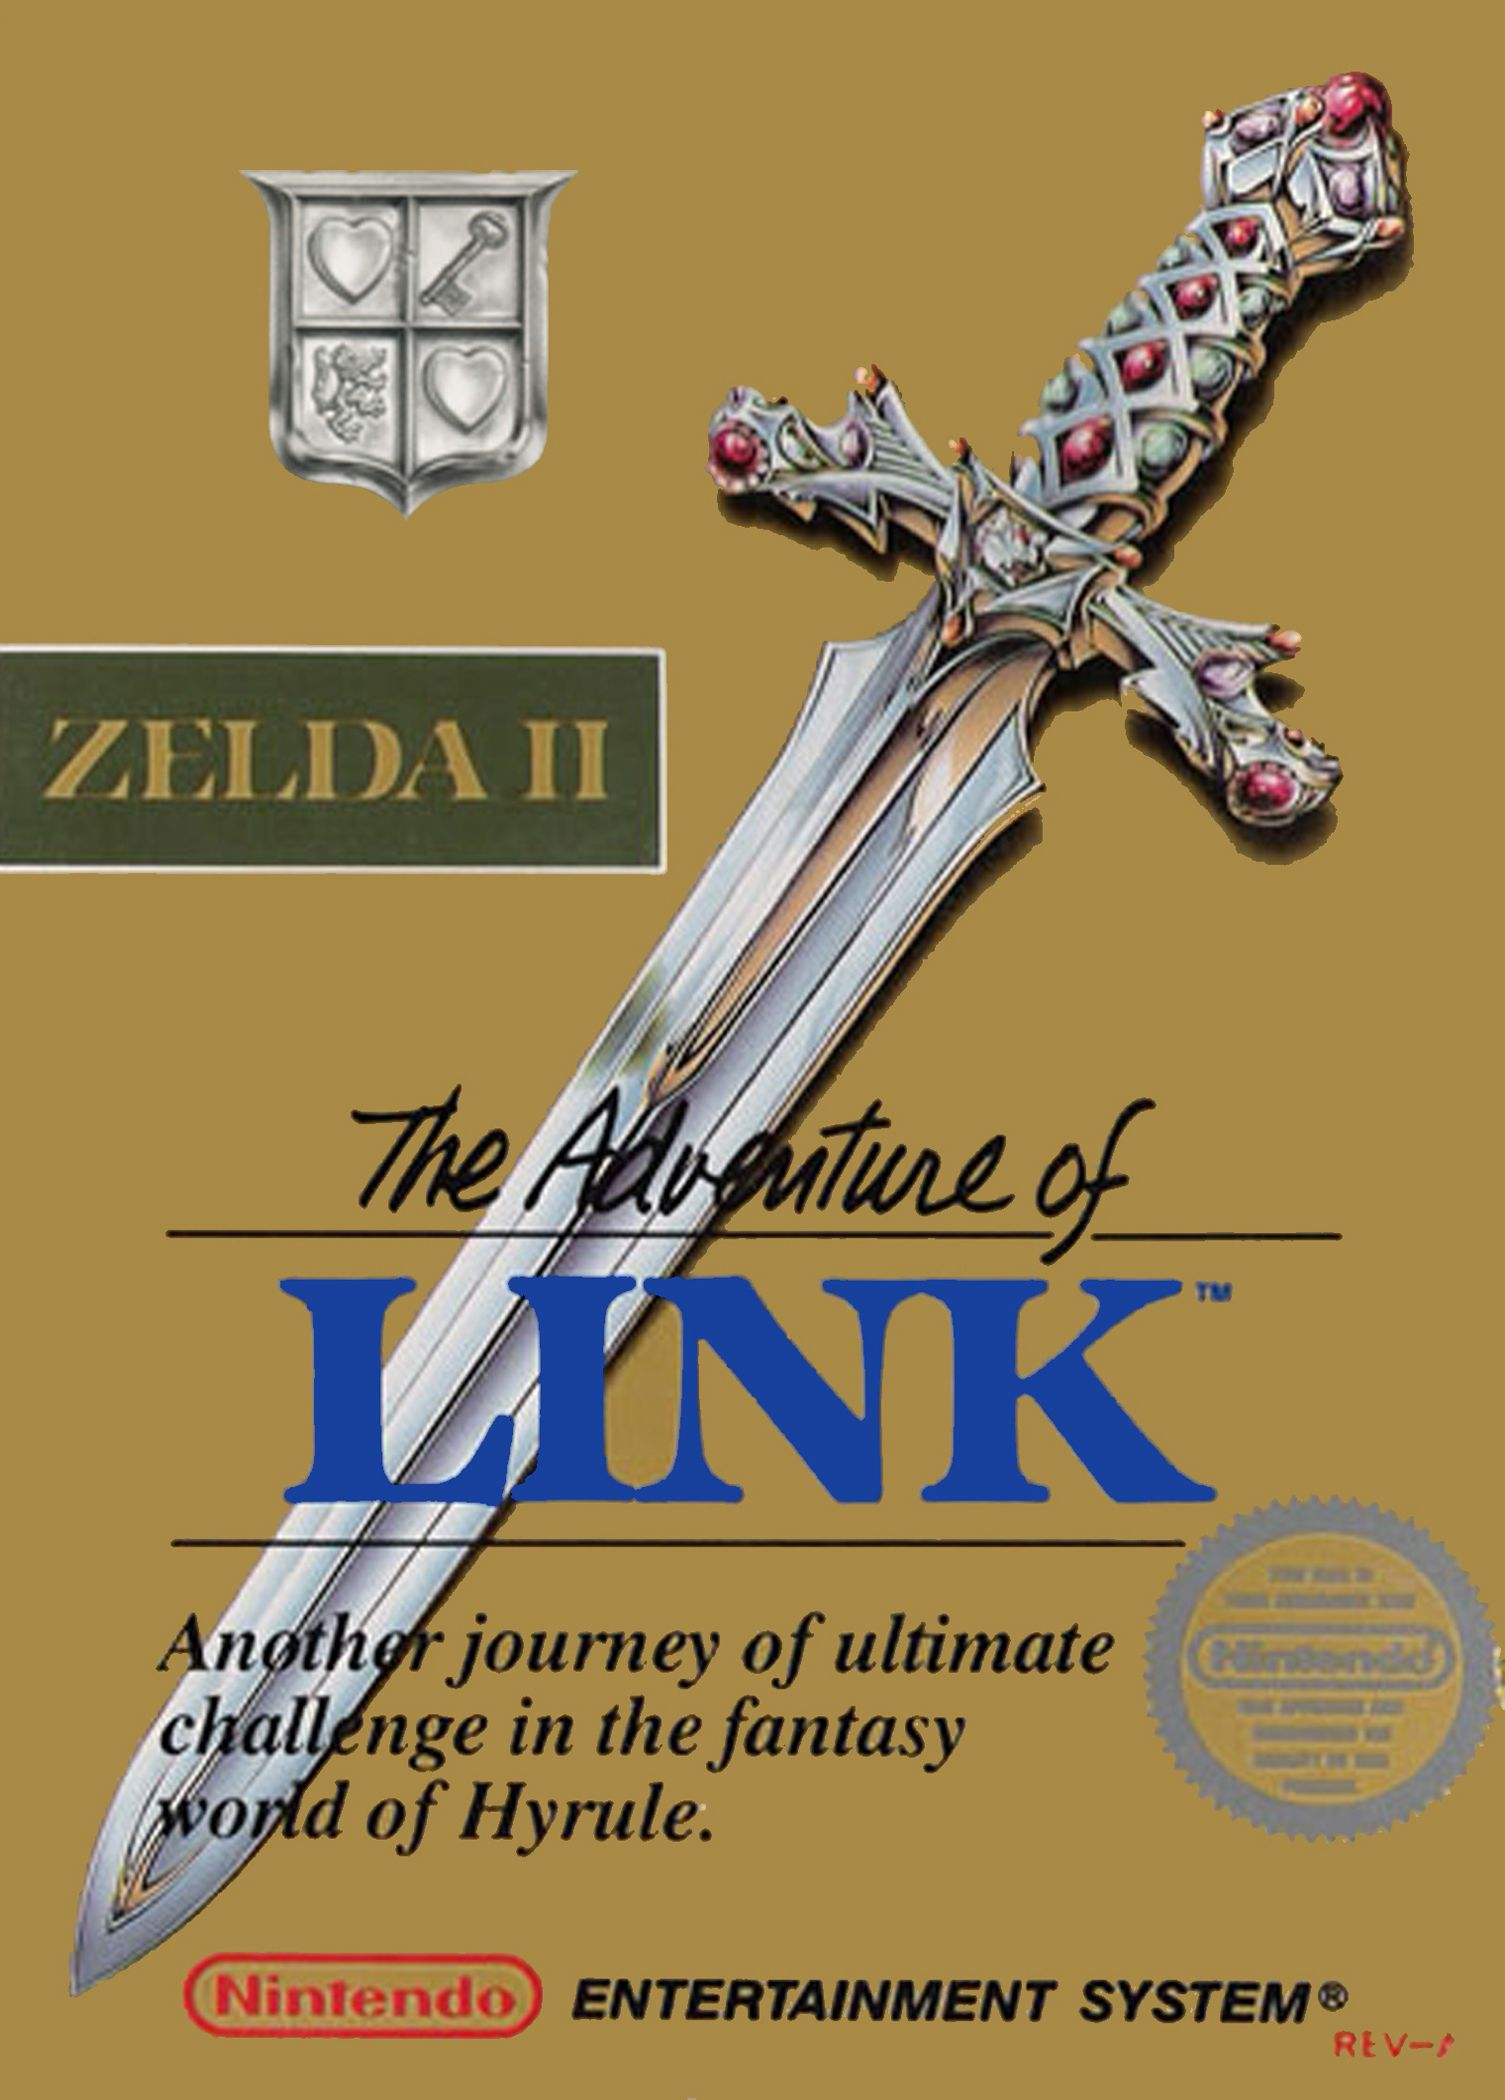 Zelda 2 : The Adventure of Link (NES)